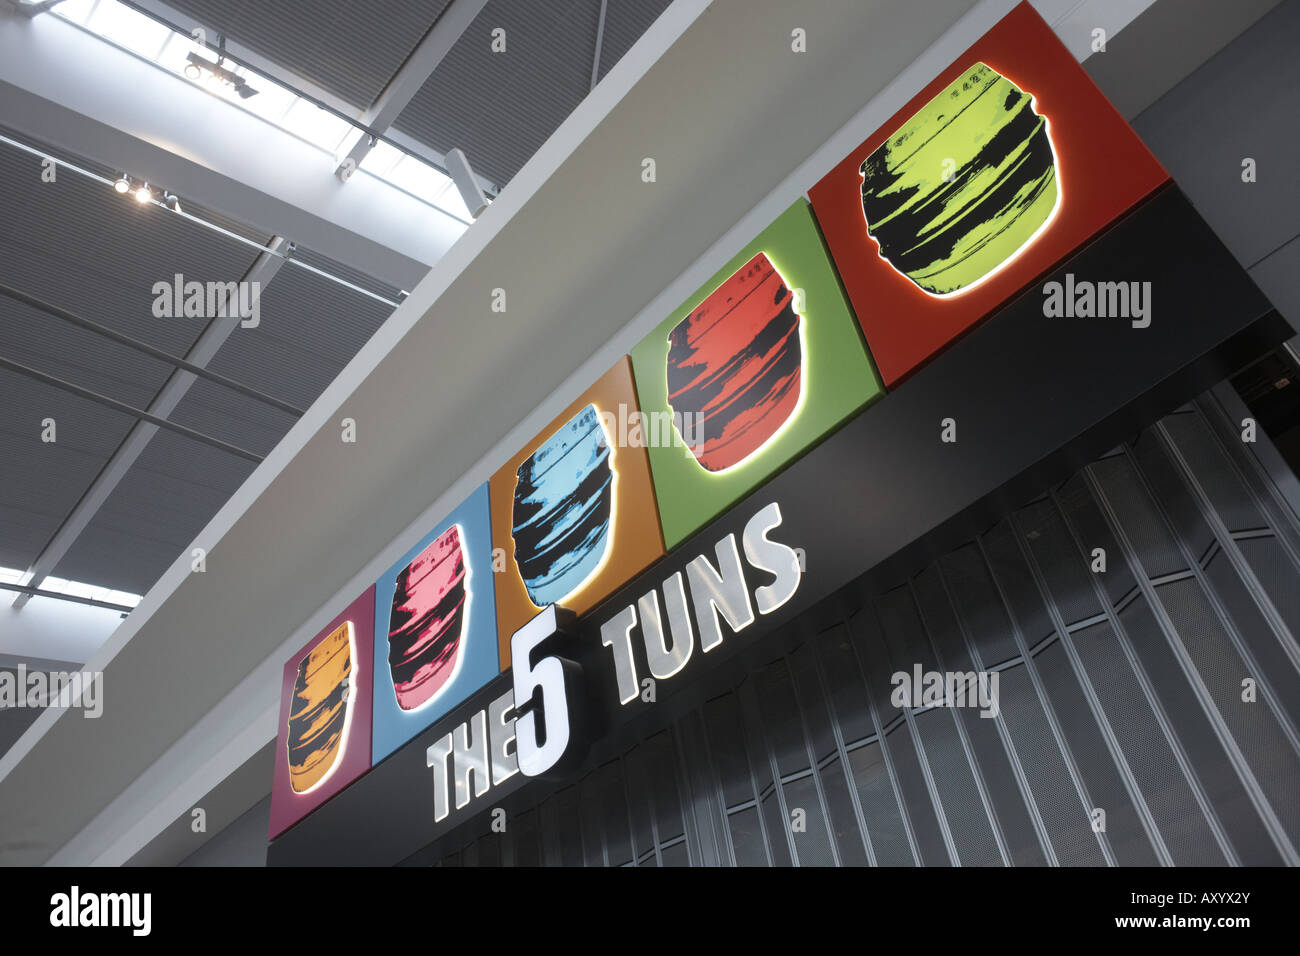 Looking upwards to the '5 Tuns' retail sign in landside Departures area newly opened London Heathrow Airport's - Stock Image